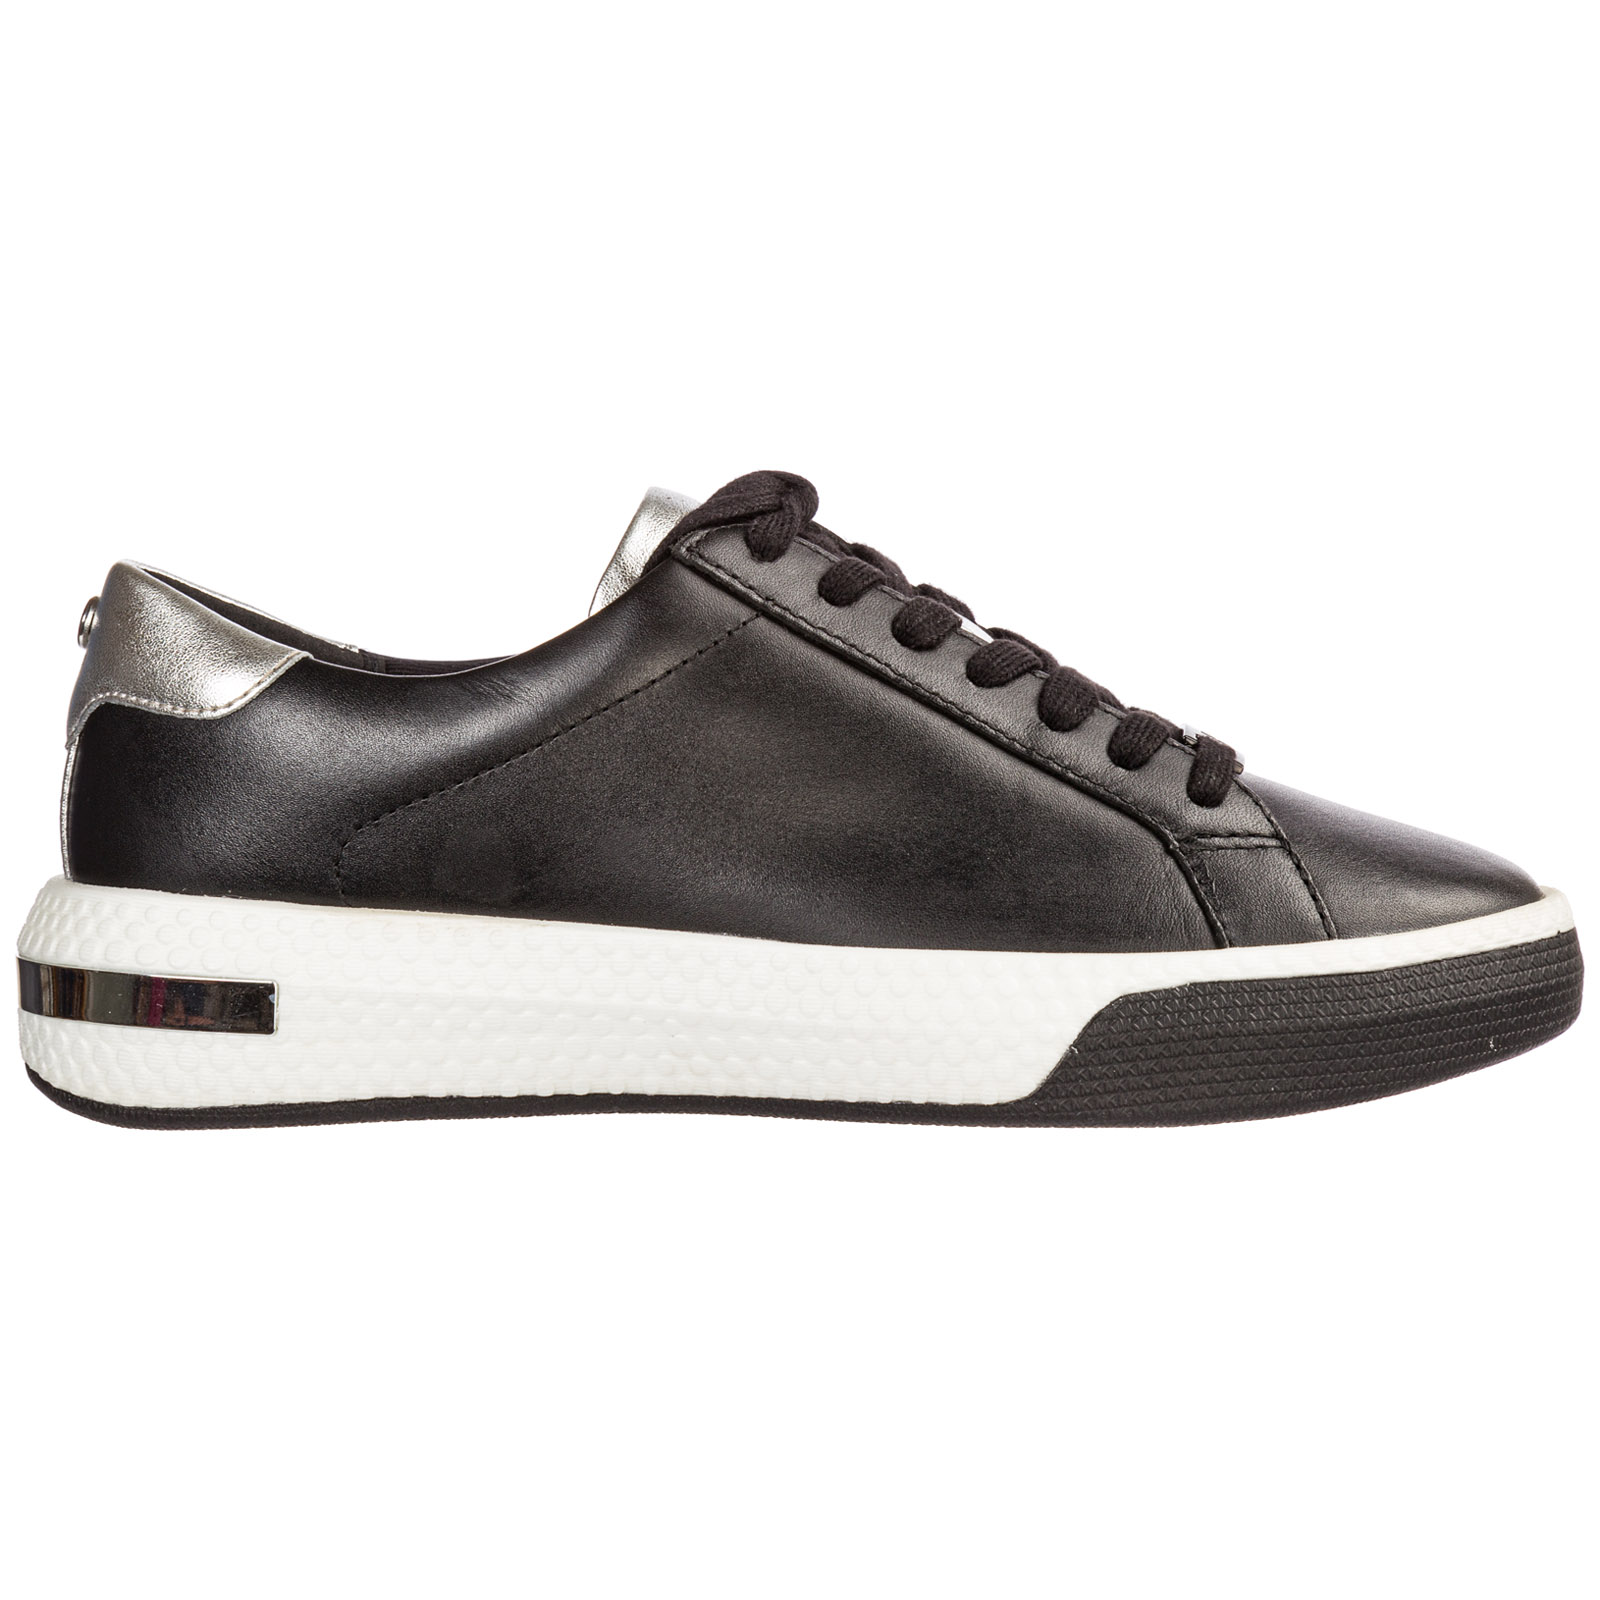 the best attitude 7bdf9 e56aa Scarpe sneakers donna in pelle codie